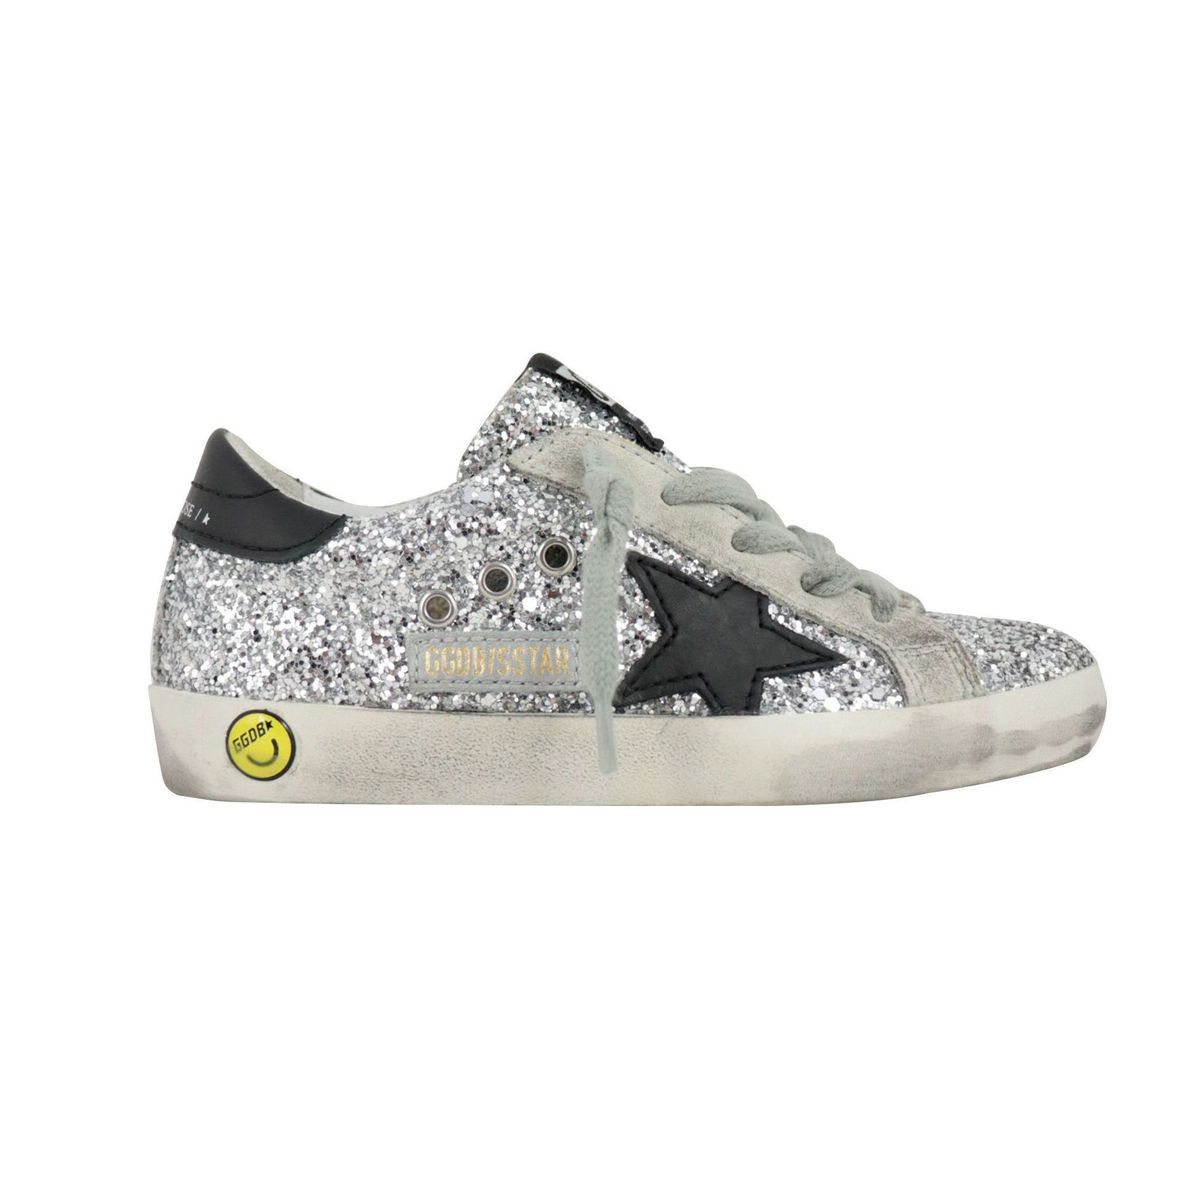 All over glitter leather sneakers with star White GOLDEN GOOSE